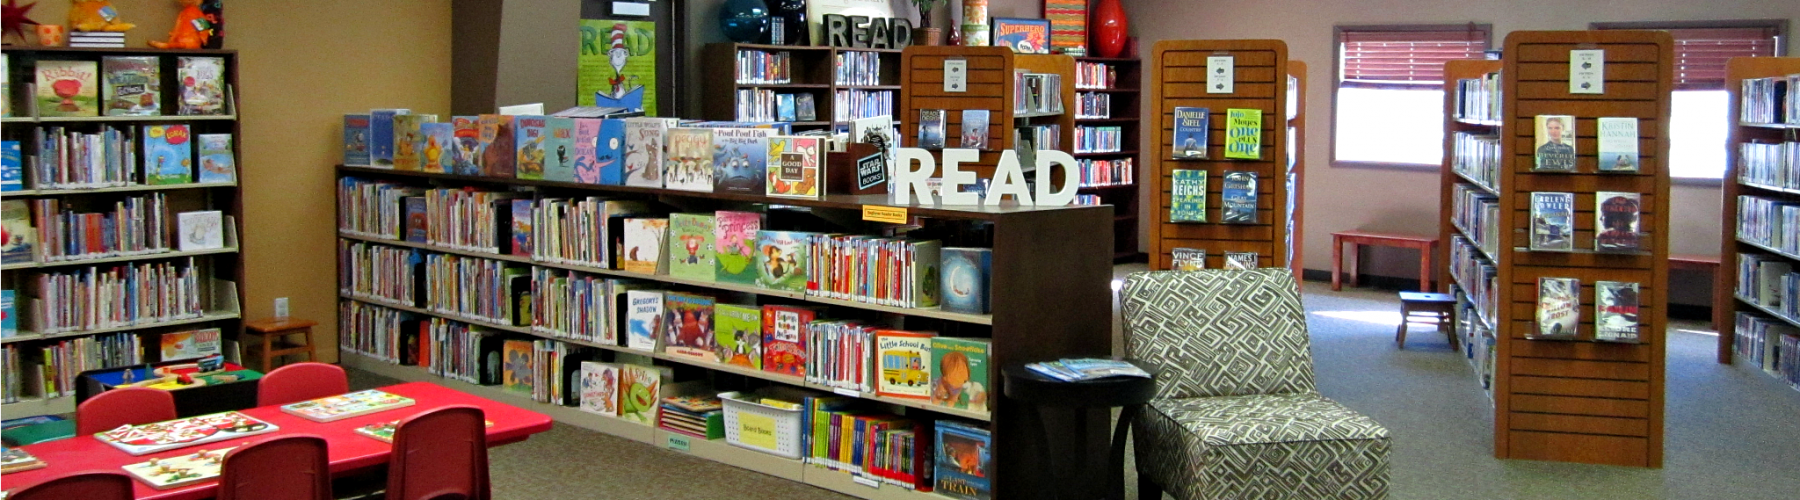 rose hill public library read check out books games movies dvds best fiction novels libraries librarians rh ks kansas